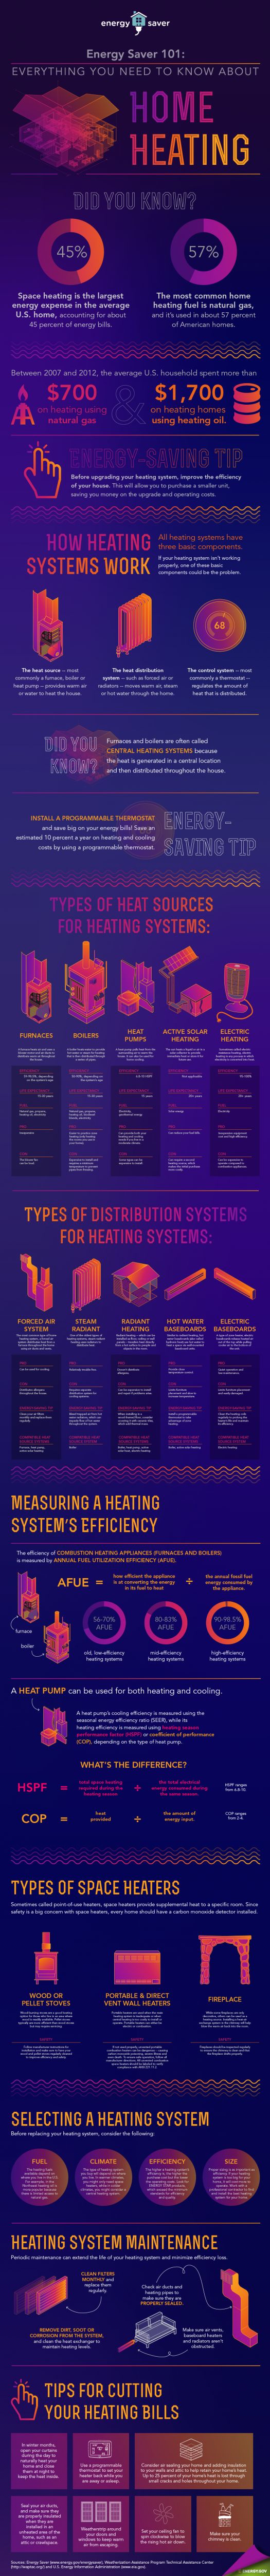 Energy Saver 101 Infographic Home Heating Department Of Energy